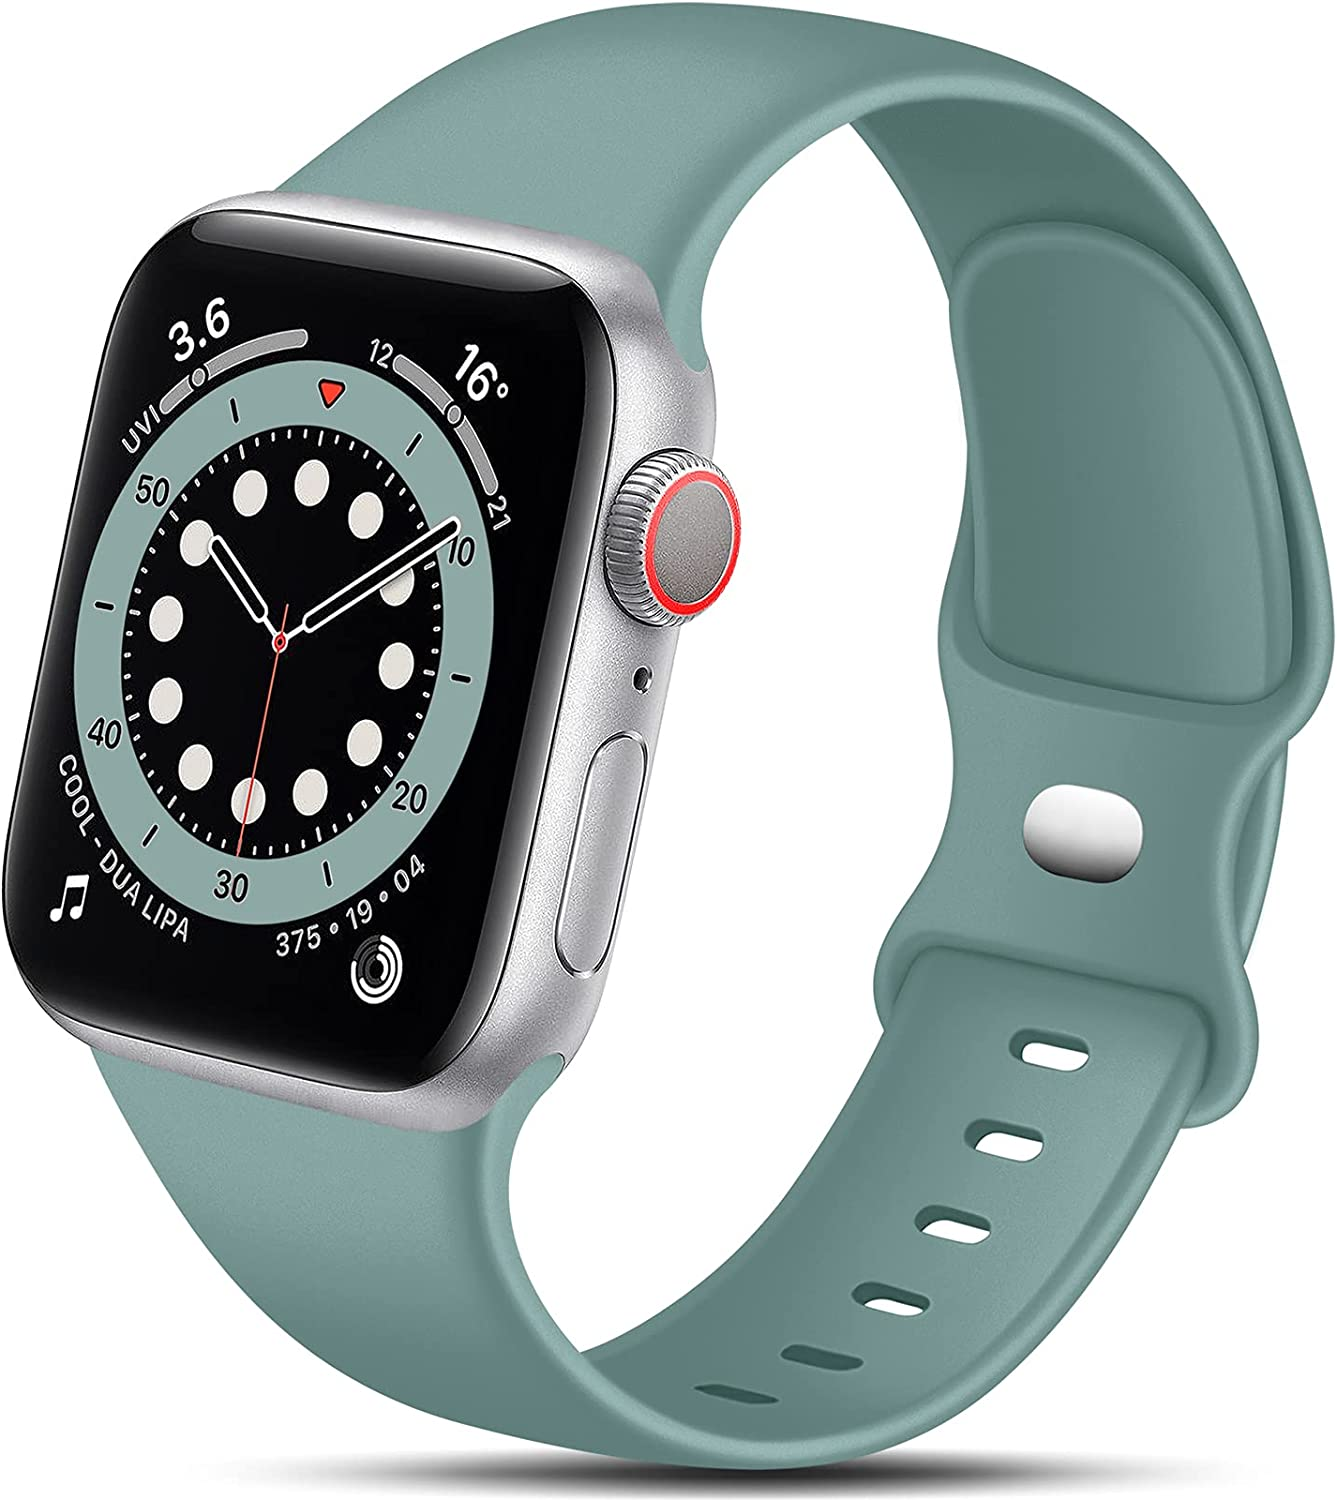 Nofeda Bands Compatible with Apple Watch Band 40mm 44mm 42mm 38mm iWatch bands women men, Soft Silicone Sport Strap Replacement for Apple Watch Series 3 SE iWatch Series 6 5 4 3 2 1